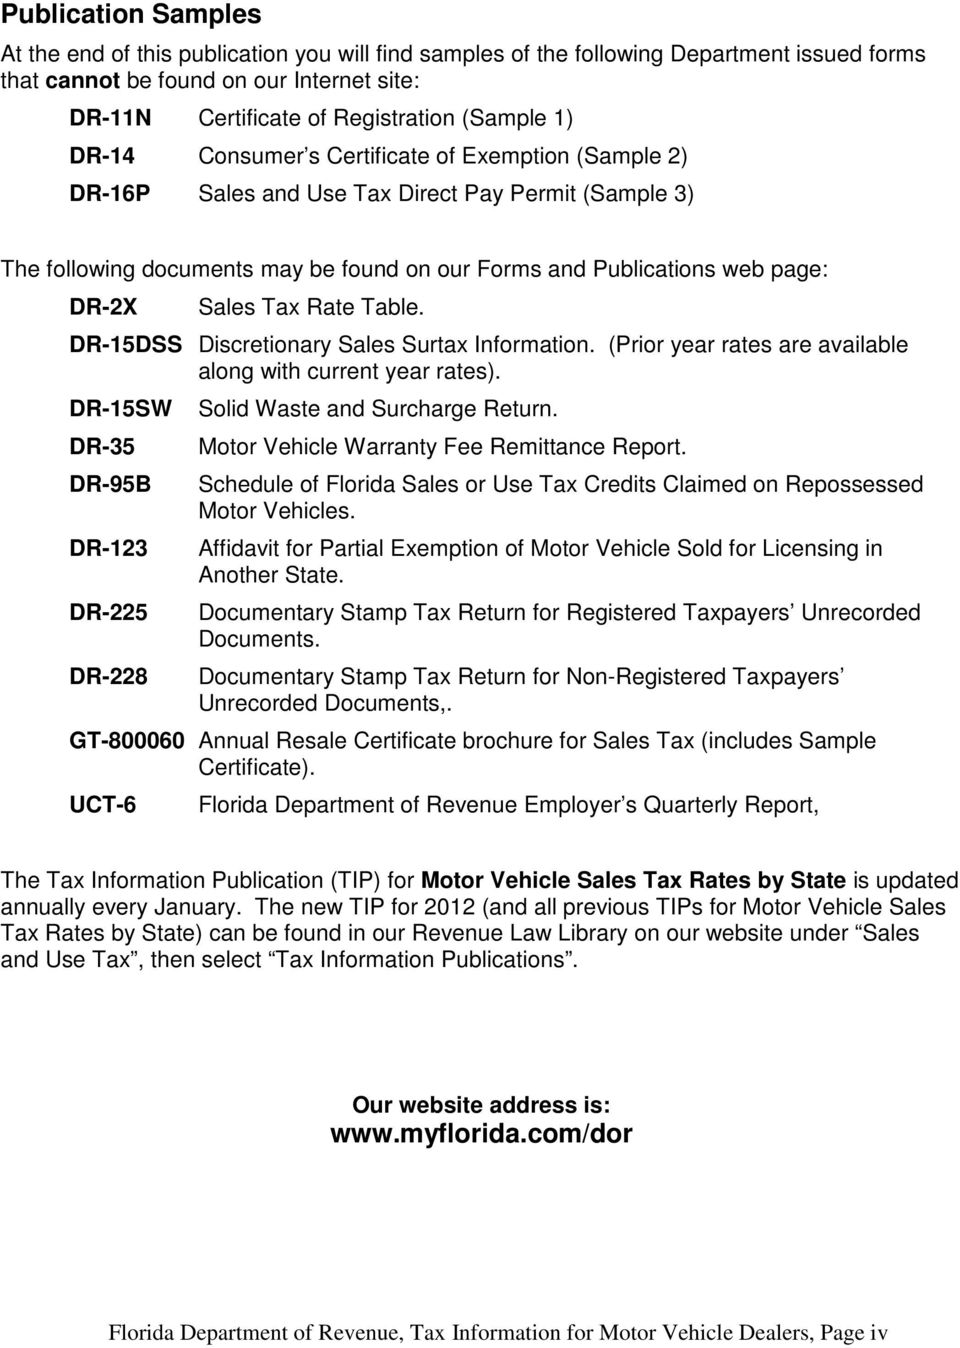 Tax Information For Motor Vehicle Dealers Pdf